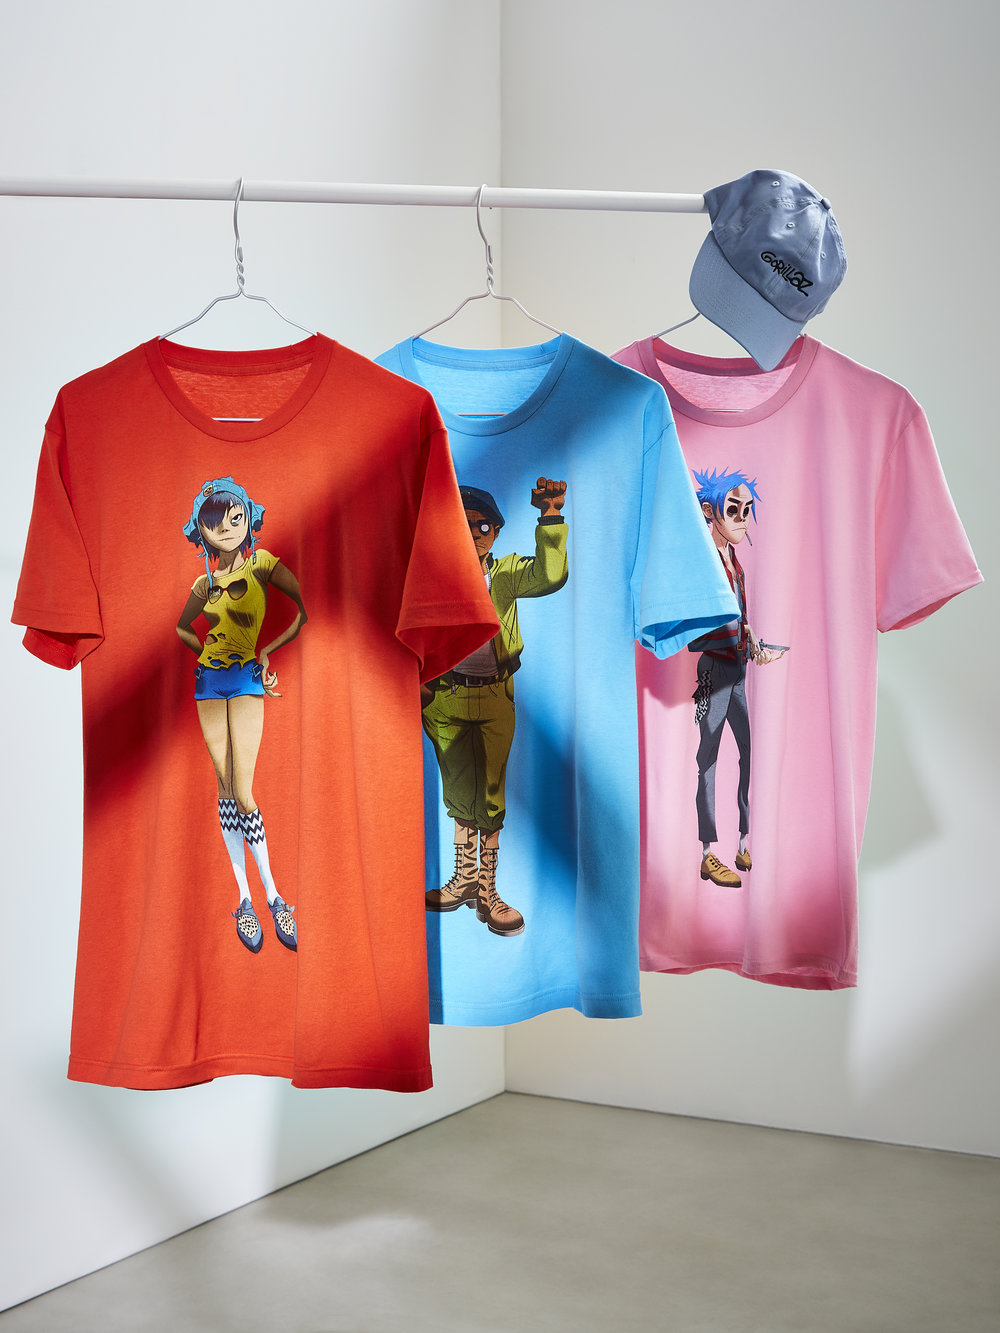 171013_nov01_Gorillaz_Exclusive_Merch_CW_RE_3157.jpg